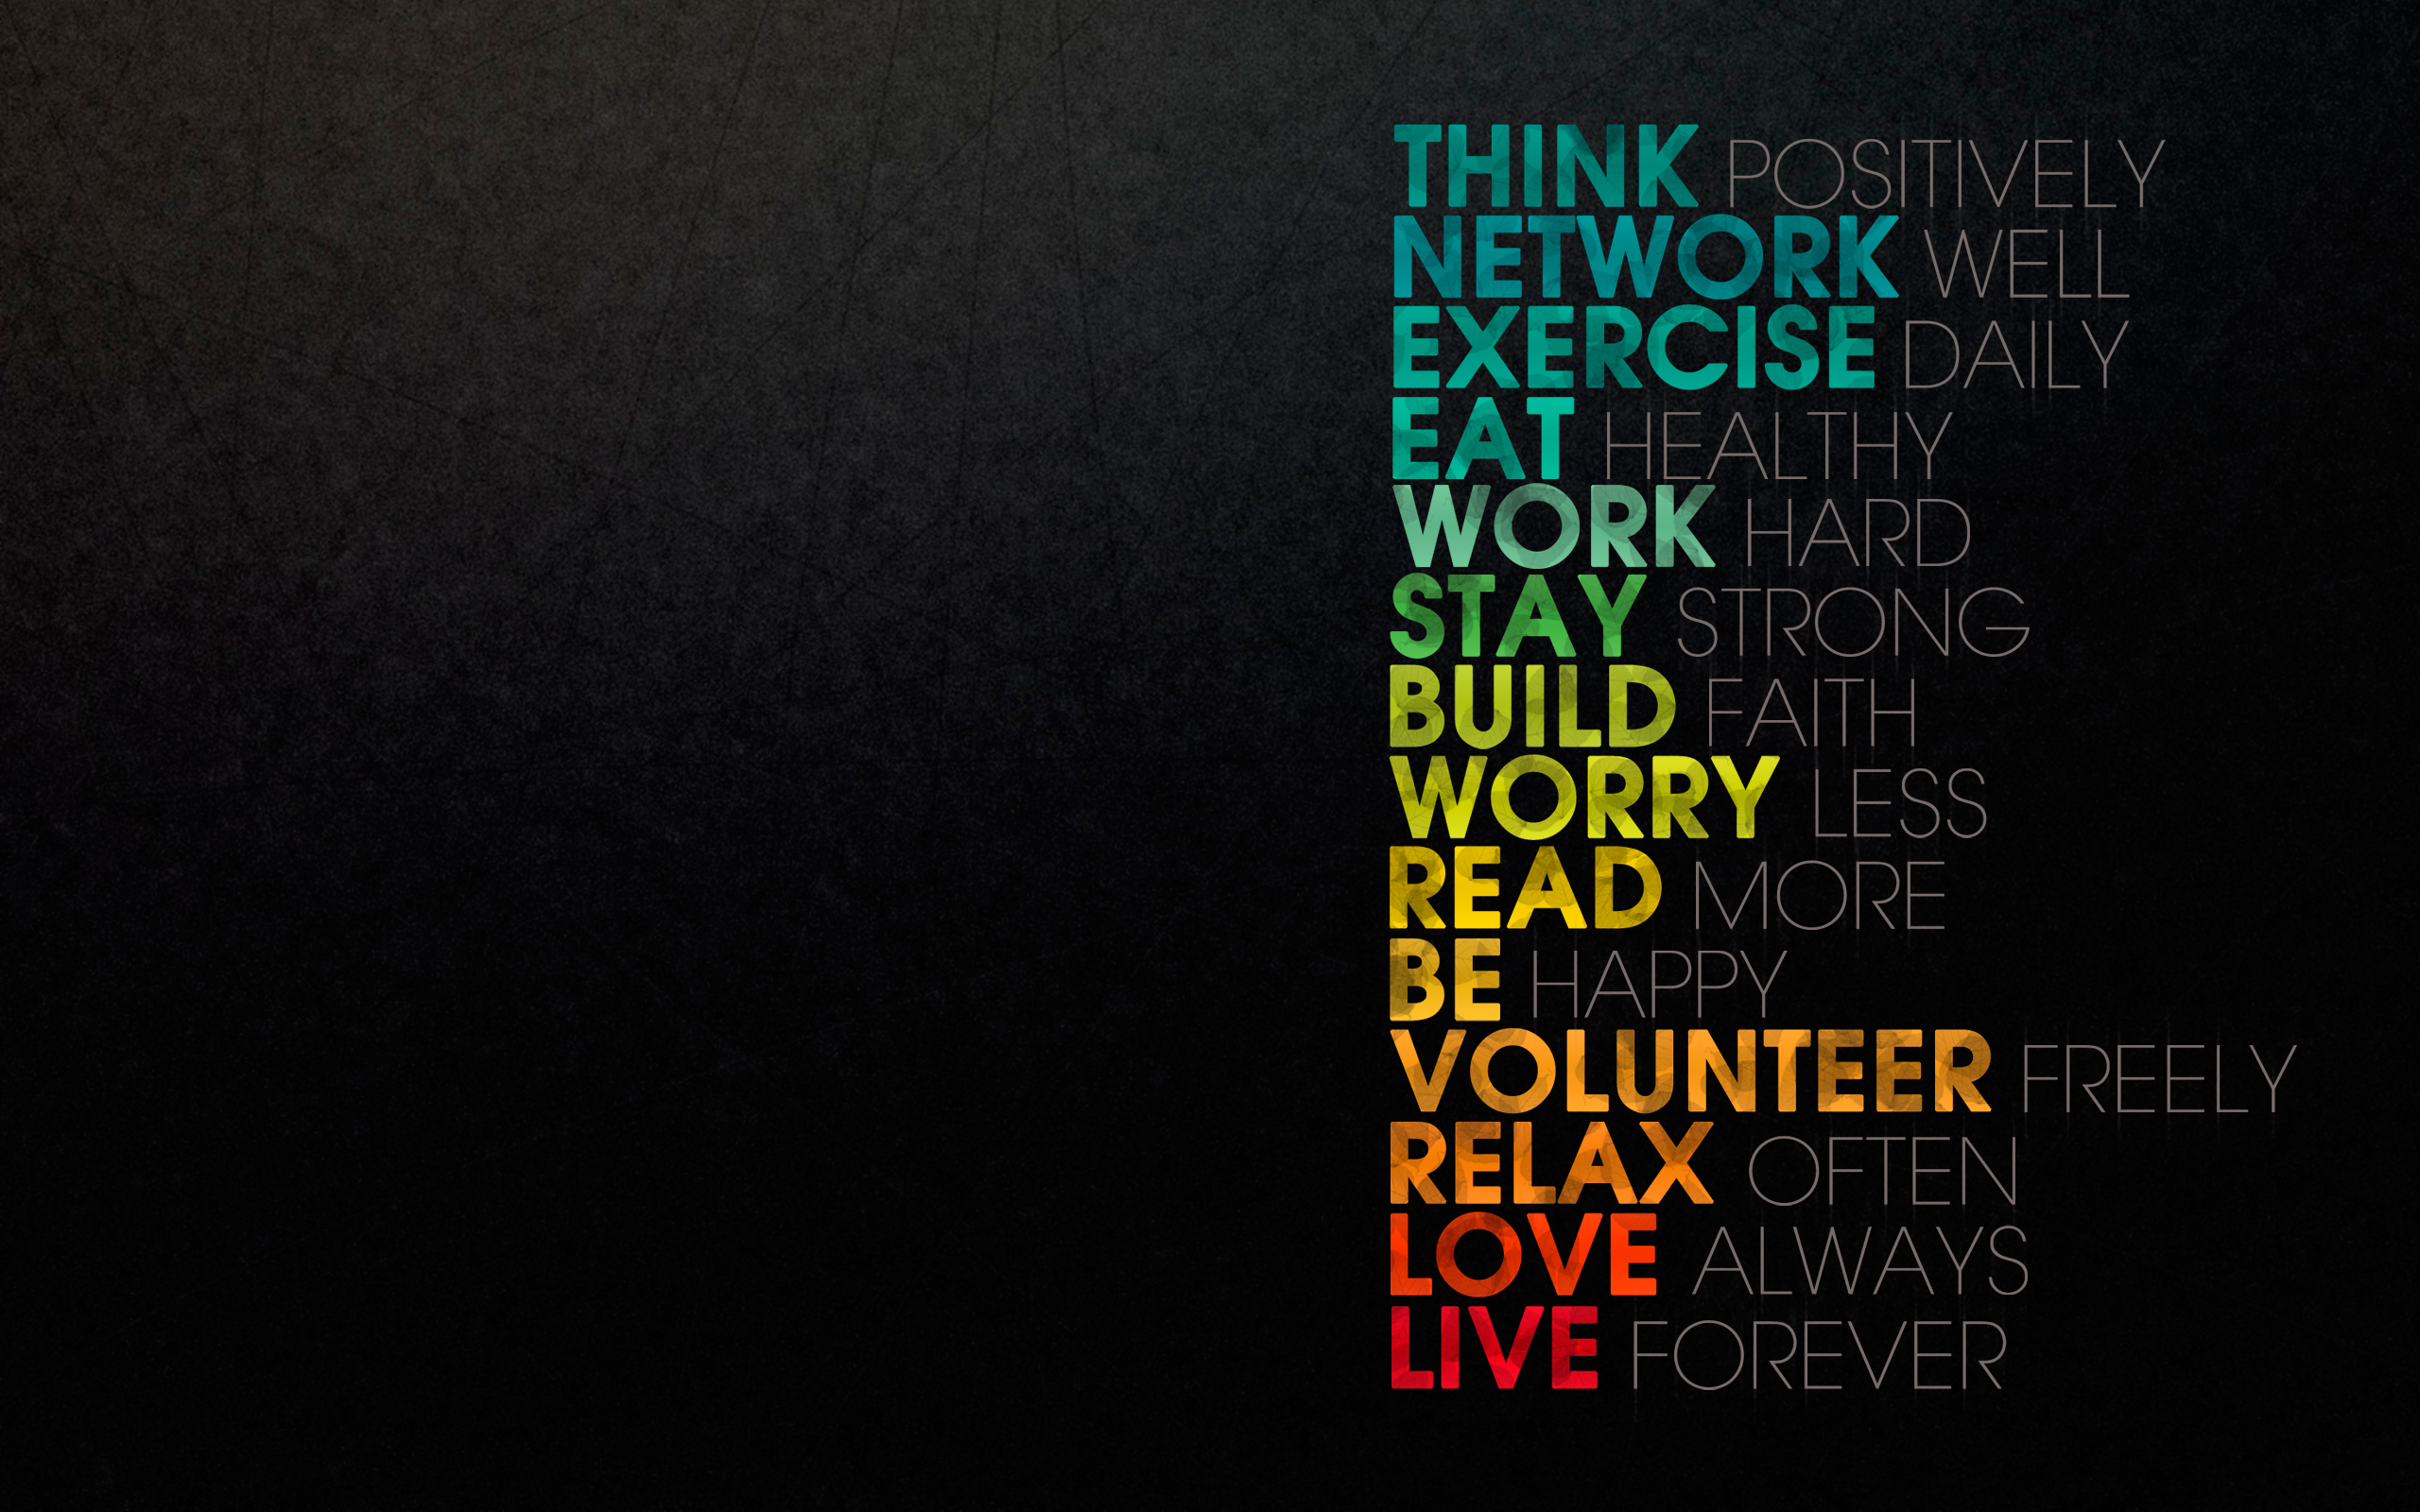 2560x1600 inspirational poster desktop pc and mac wallpaper